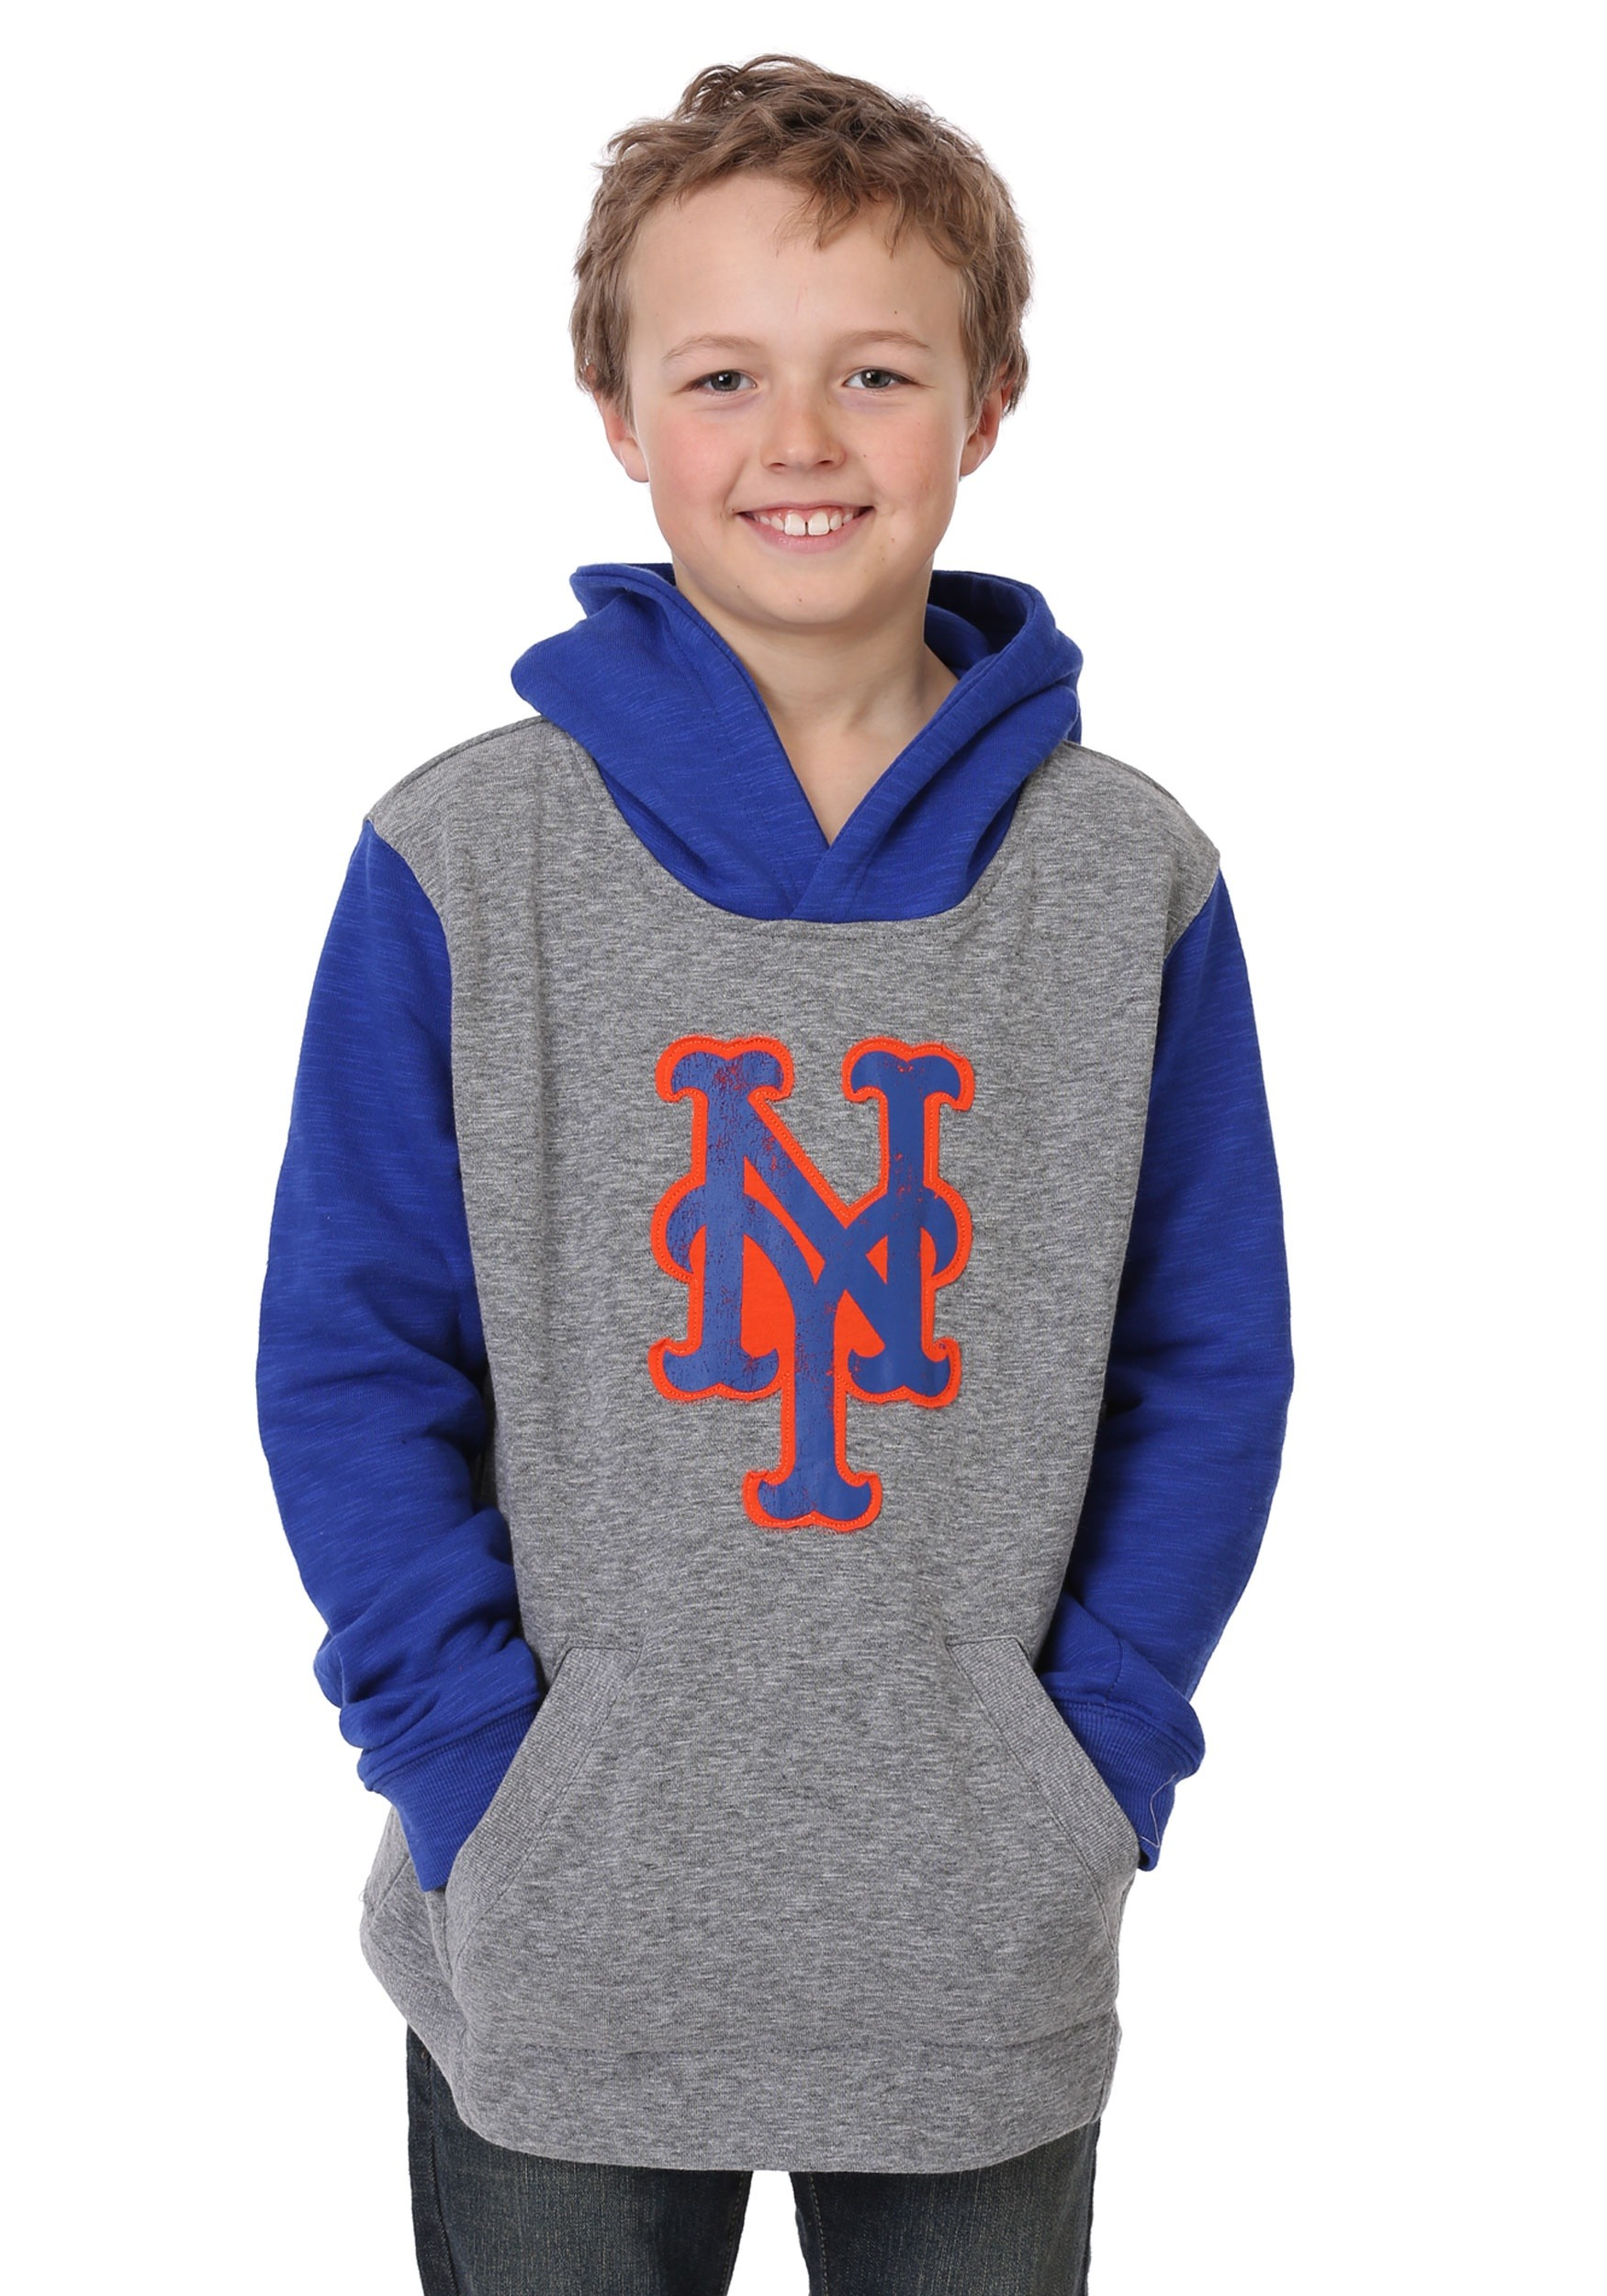 brand new 943a5 a7bd0 Mets New Beginnings Pullover Hooded Youth Sweatshirt